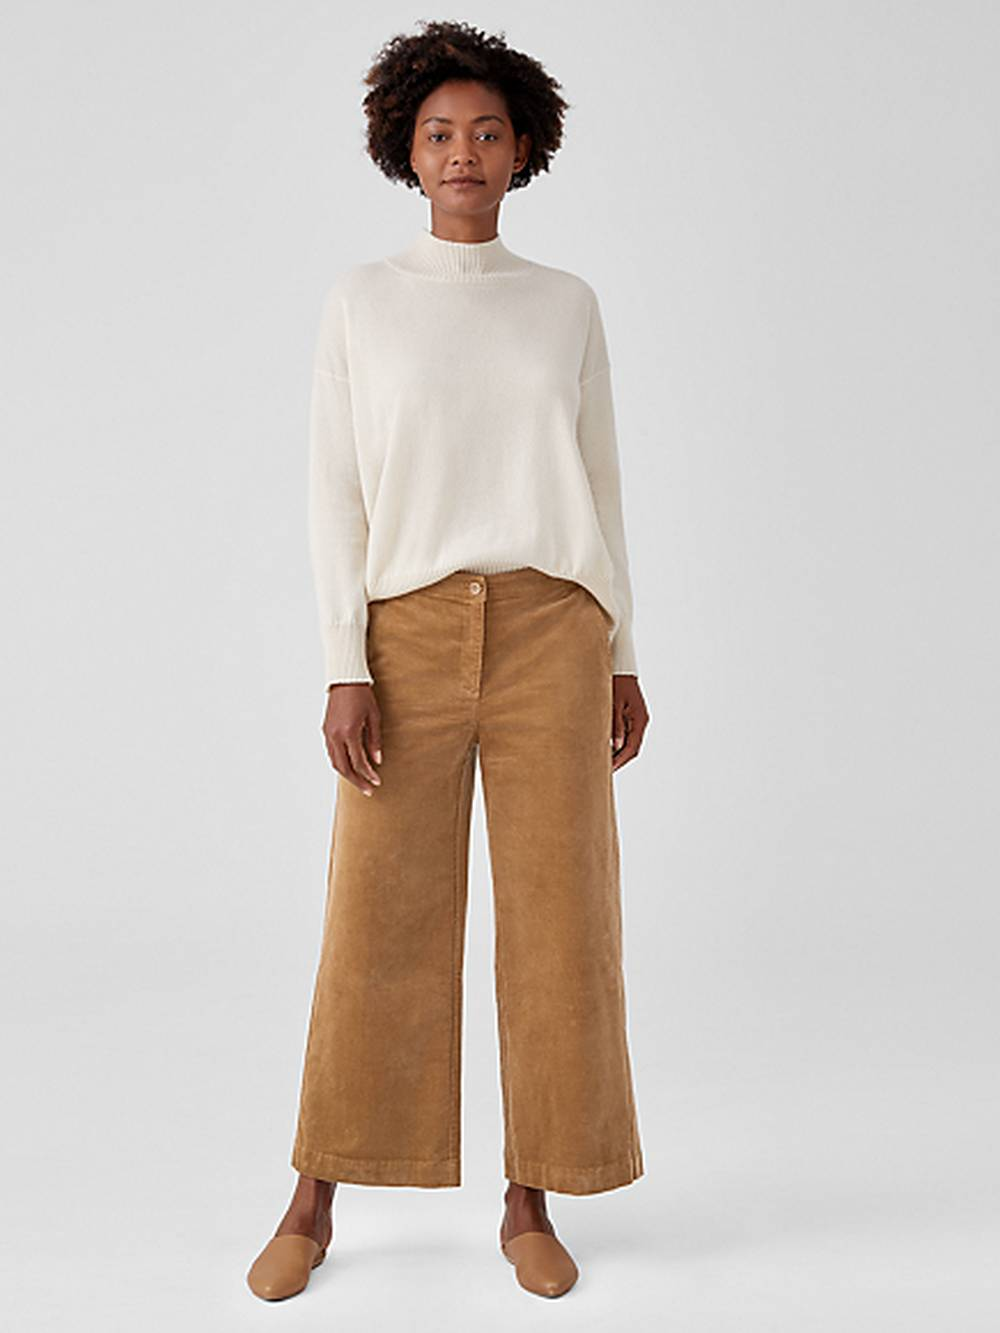 eileen fisher pants petite hourglass